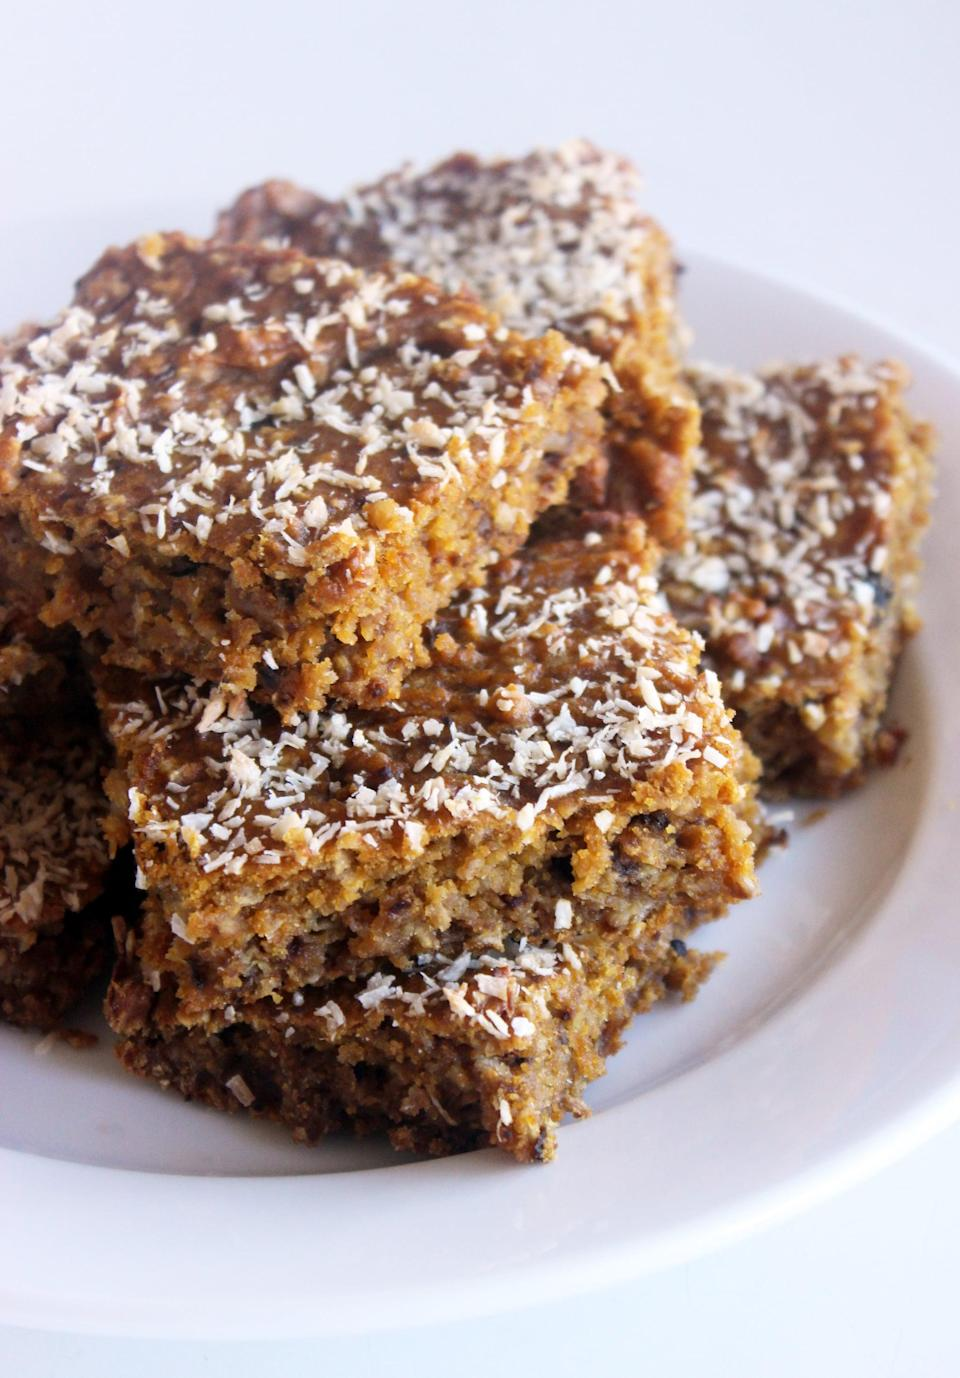 """<p>If supersweet desserts aren't your thing, look no further than these pumpkin oatmeal coconut bars. Made with whole wheat flour and sweetened with applesauce, they'll satisfy your craving for something cakey minus the sugar bomb.</p> <p><b>Get the recipe</b>: <a href=""""https://www.popsugar.com/fitness/Recipe-Pumpkin-Oatmeal-Coconut-Bars-2167337"""" class=""""link rapid-noclick-resp"""" rel=""""nofollow noopener"""" target=""""_blank"""" data-ylk=""""slk:pumpkin oatmeal coconut bars"""">pumpkin oatmeal coconut bars</a></p>"""